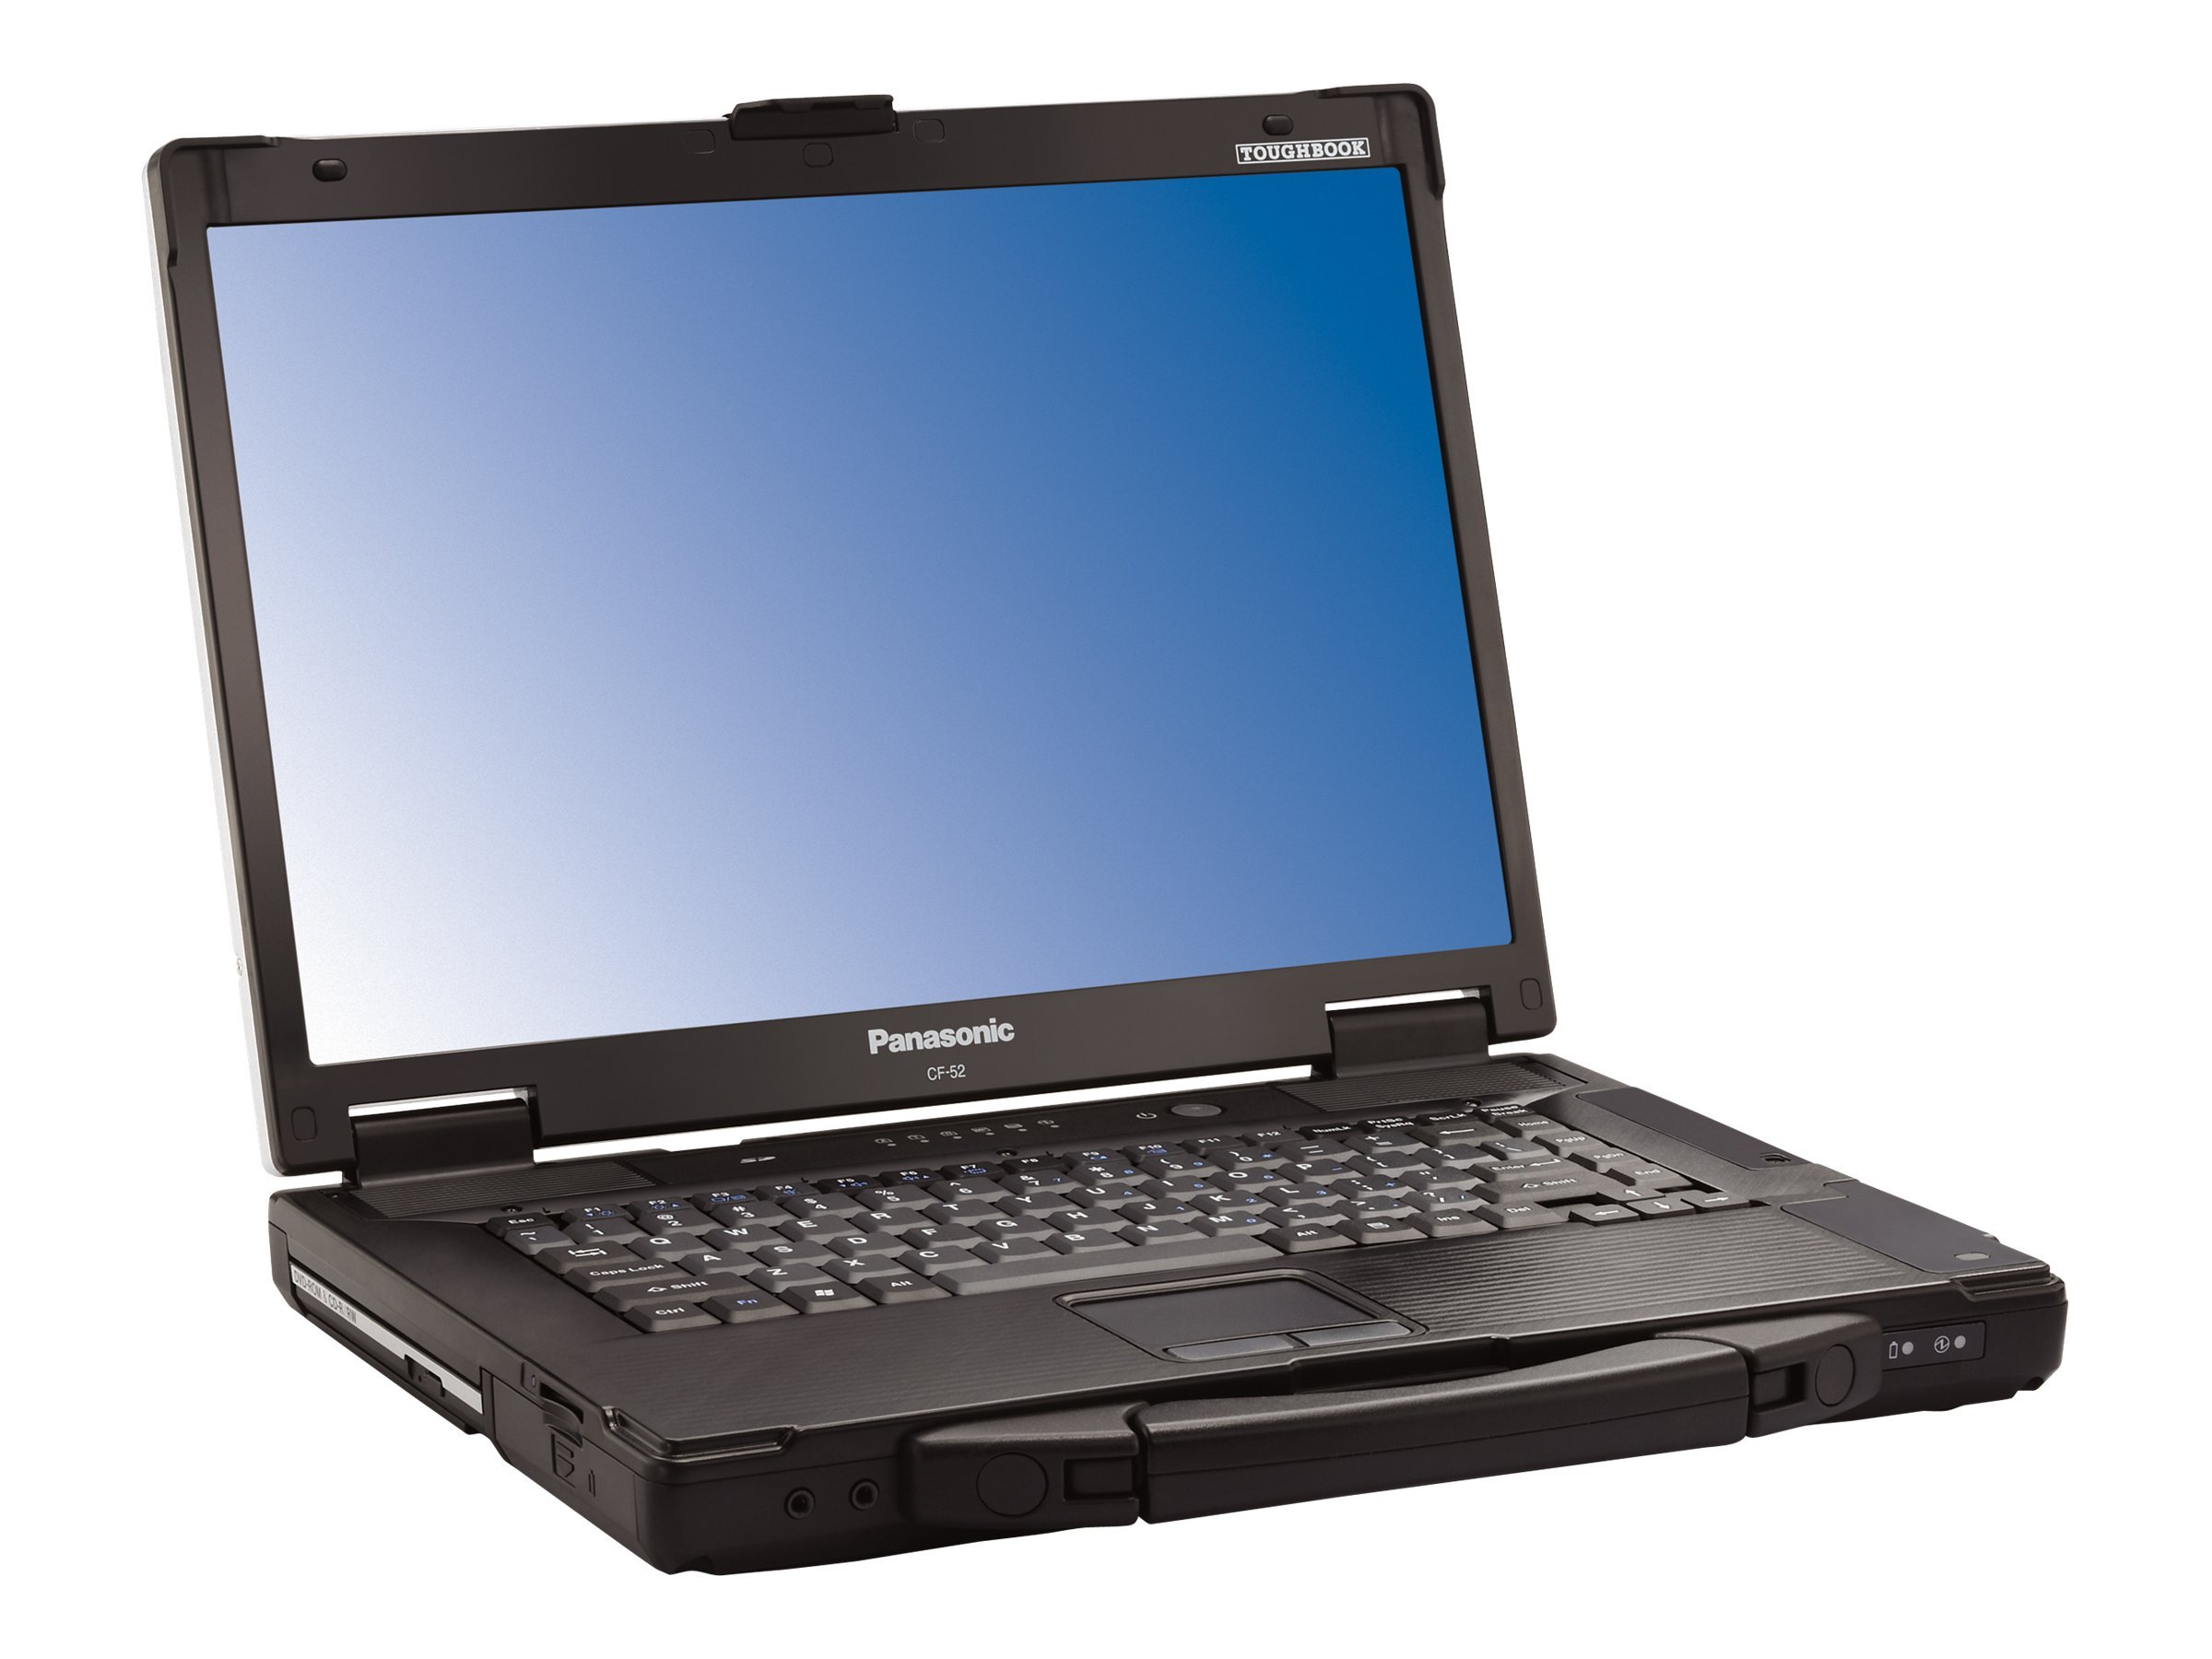 Panasonic Toughbook 31 vPro Core i7-5600U 2.6GHz 8GB 256GB 13.1 XGA MT W10P, CF-3110999VM